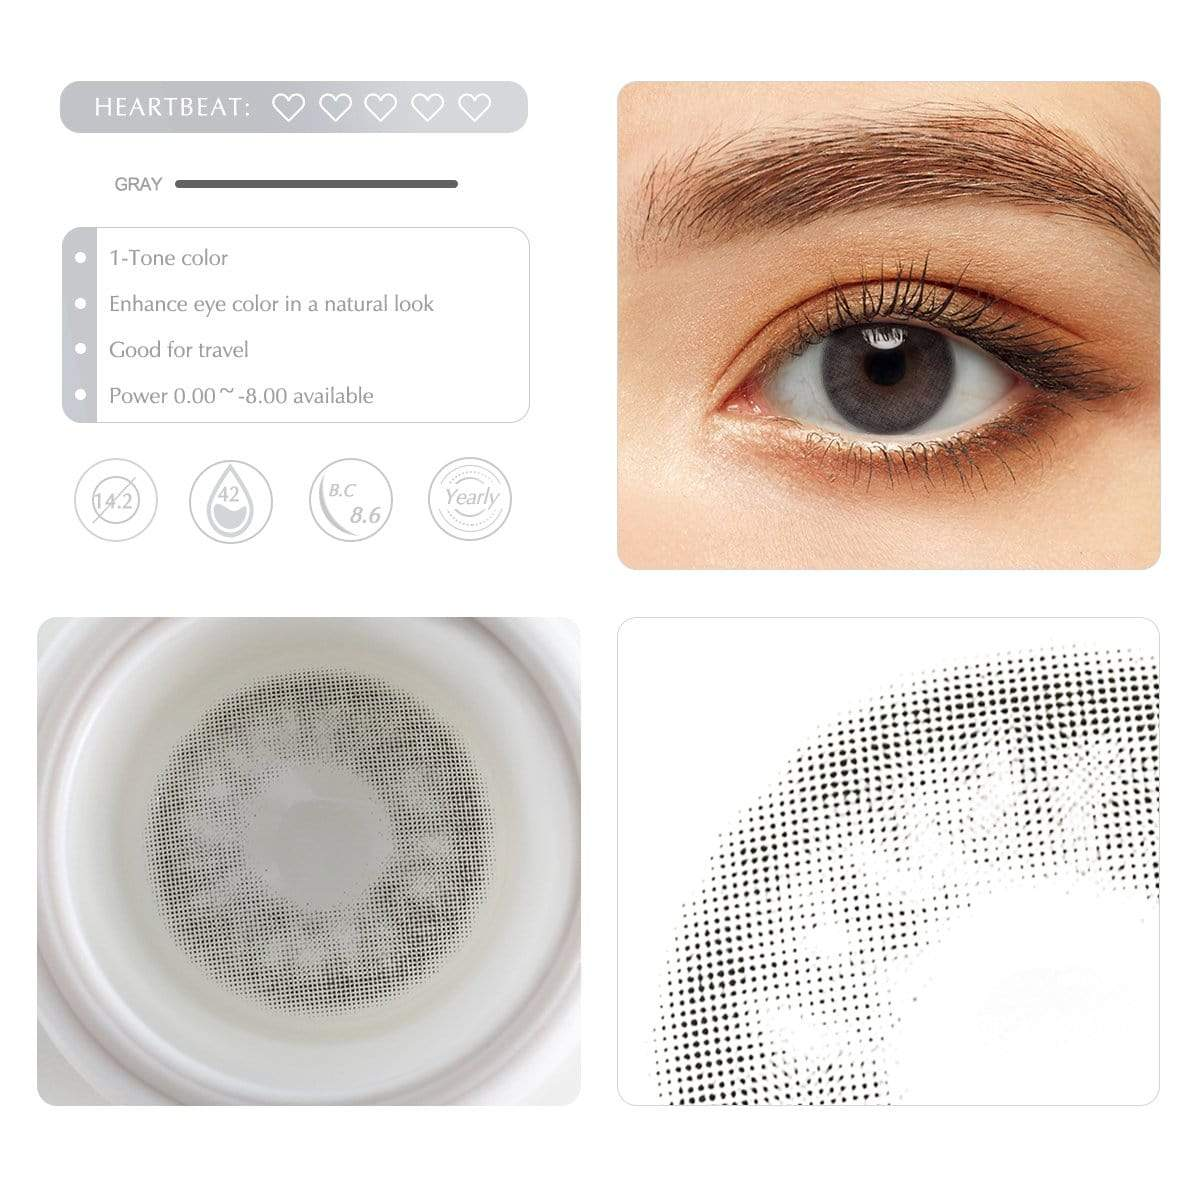 Cloudy gray contact lens details display rederings